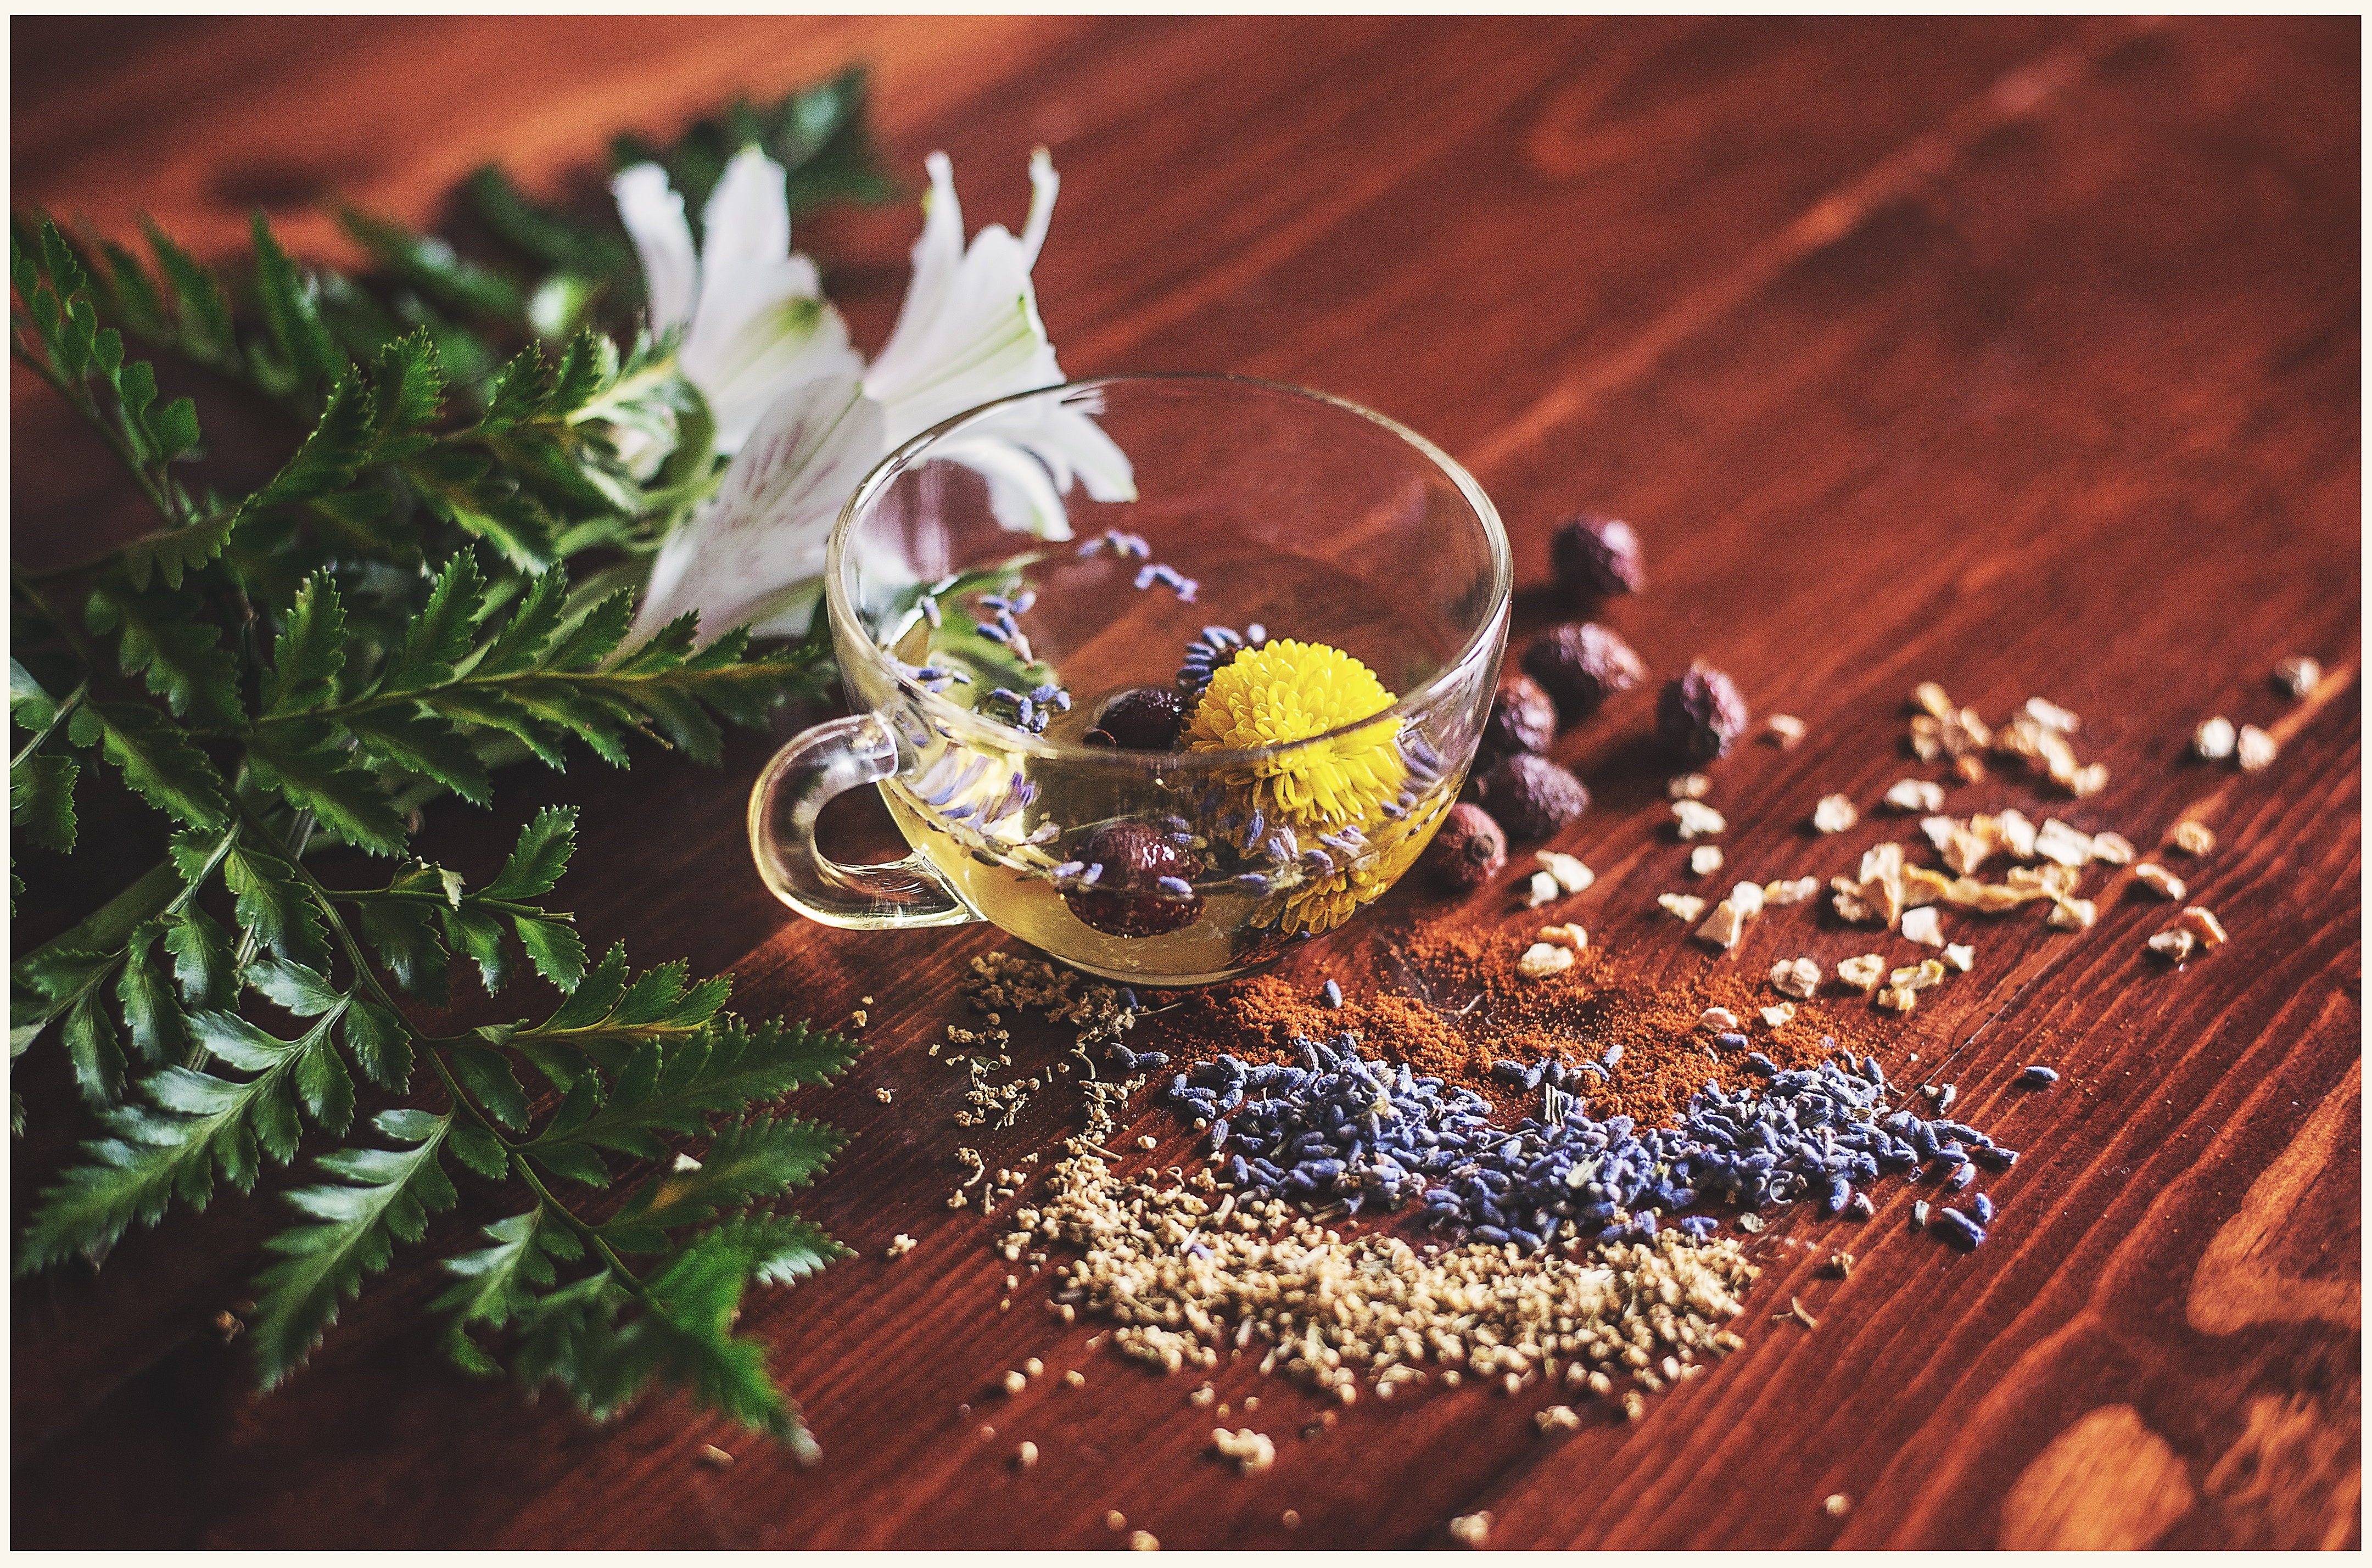 Black tea with spices, herbs and plant.